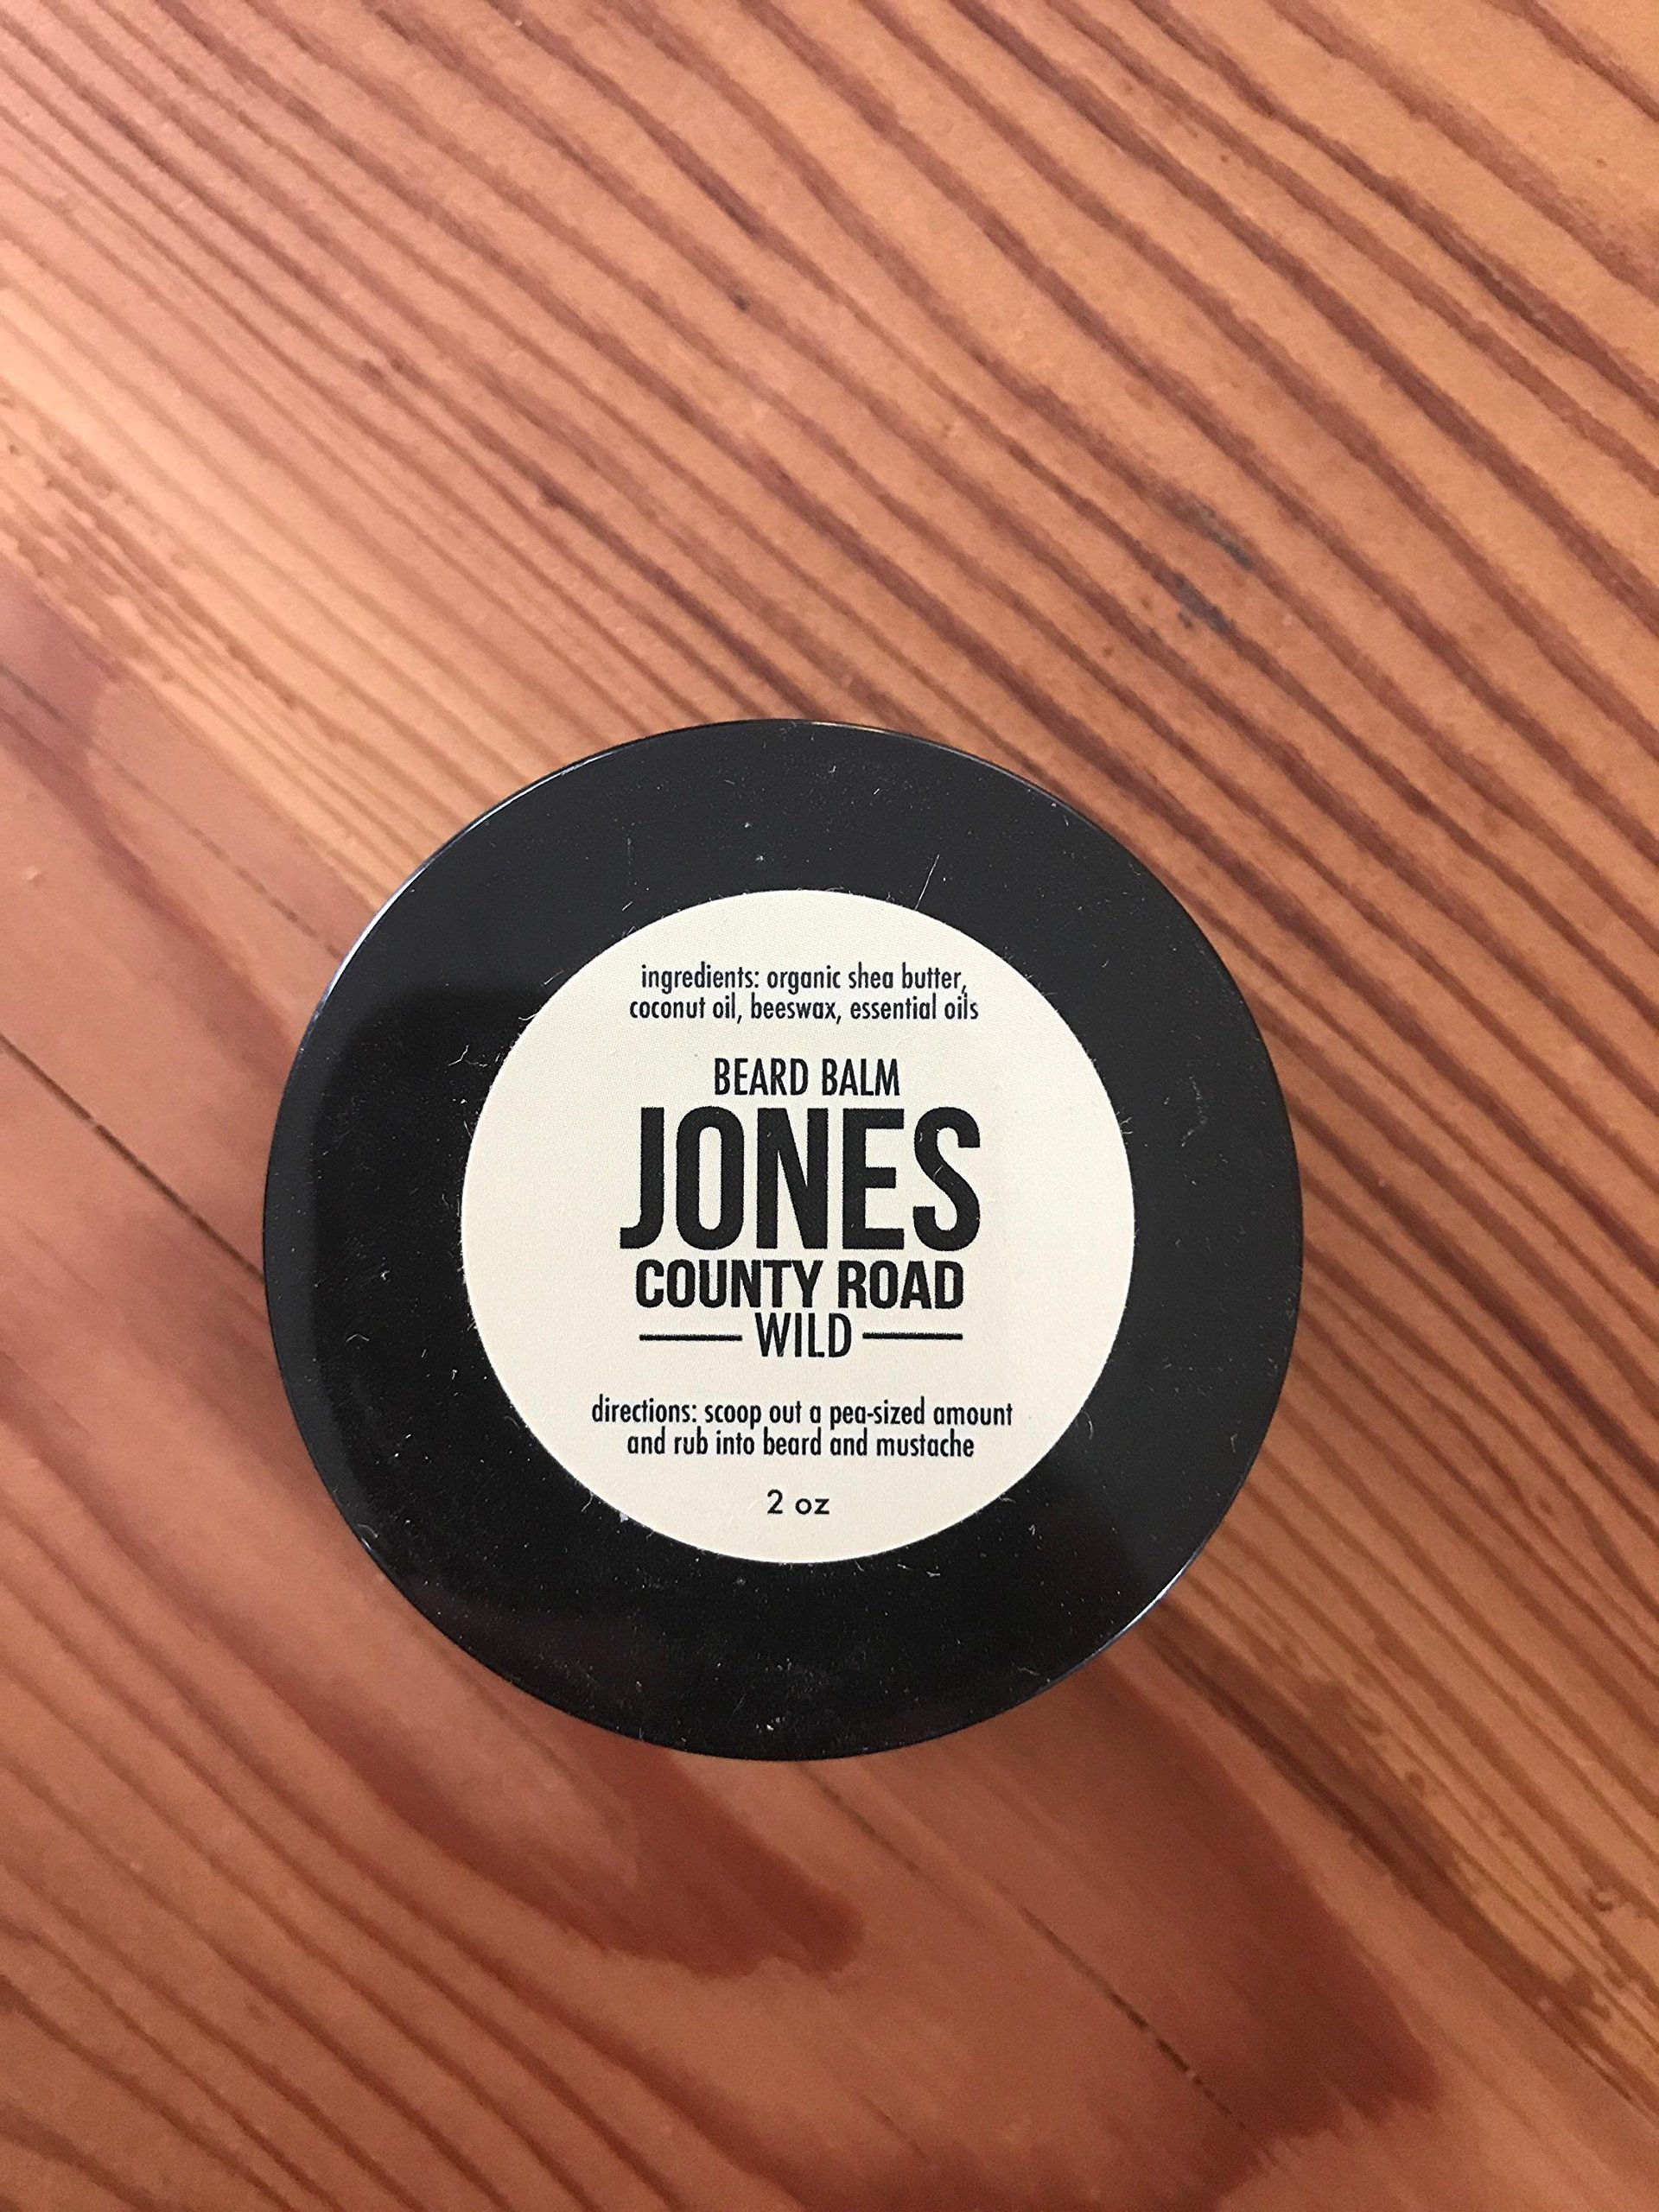 Beard Balm by Jones County Road